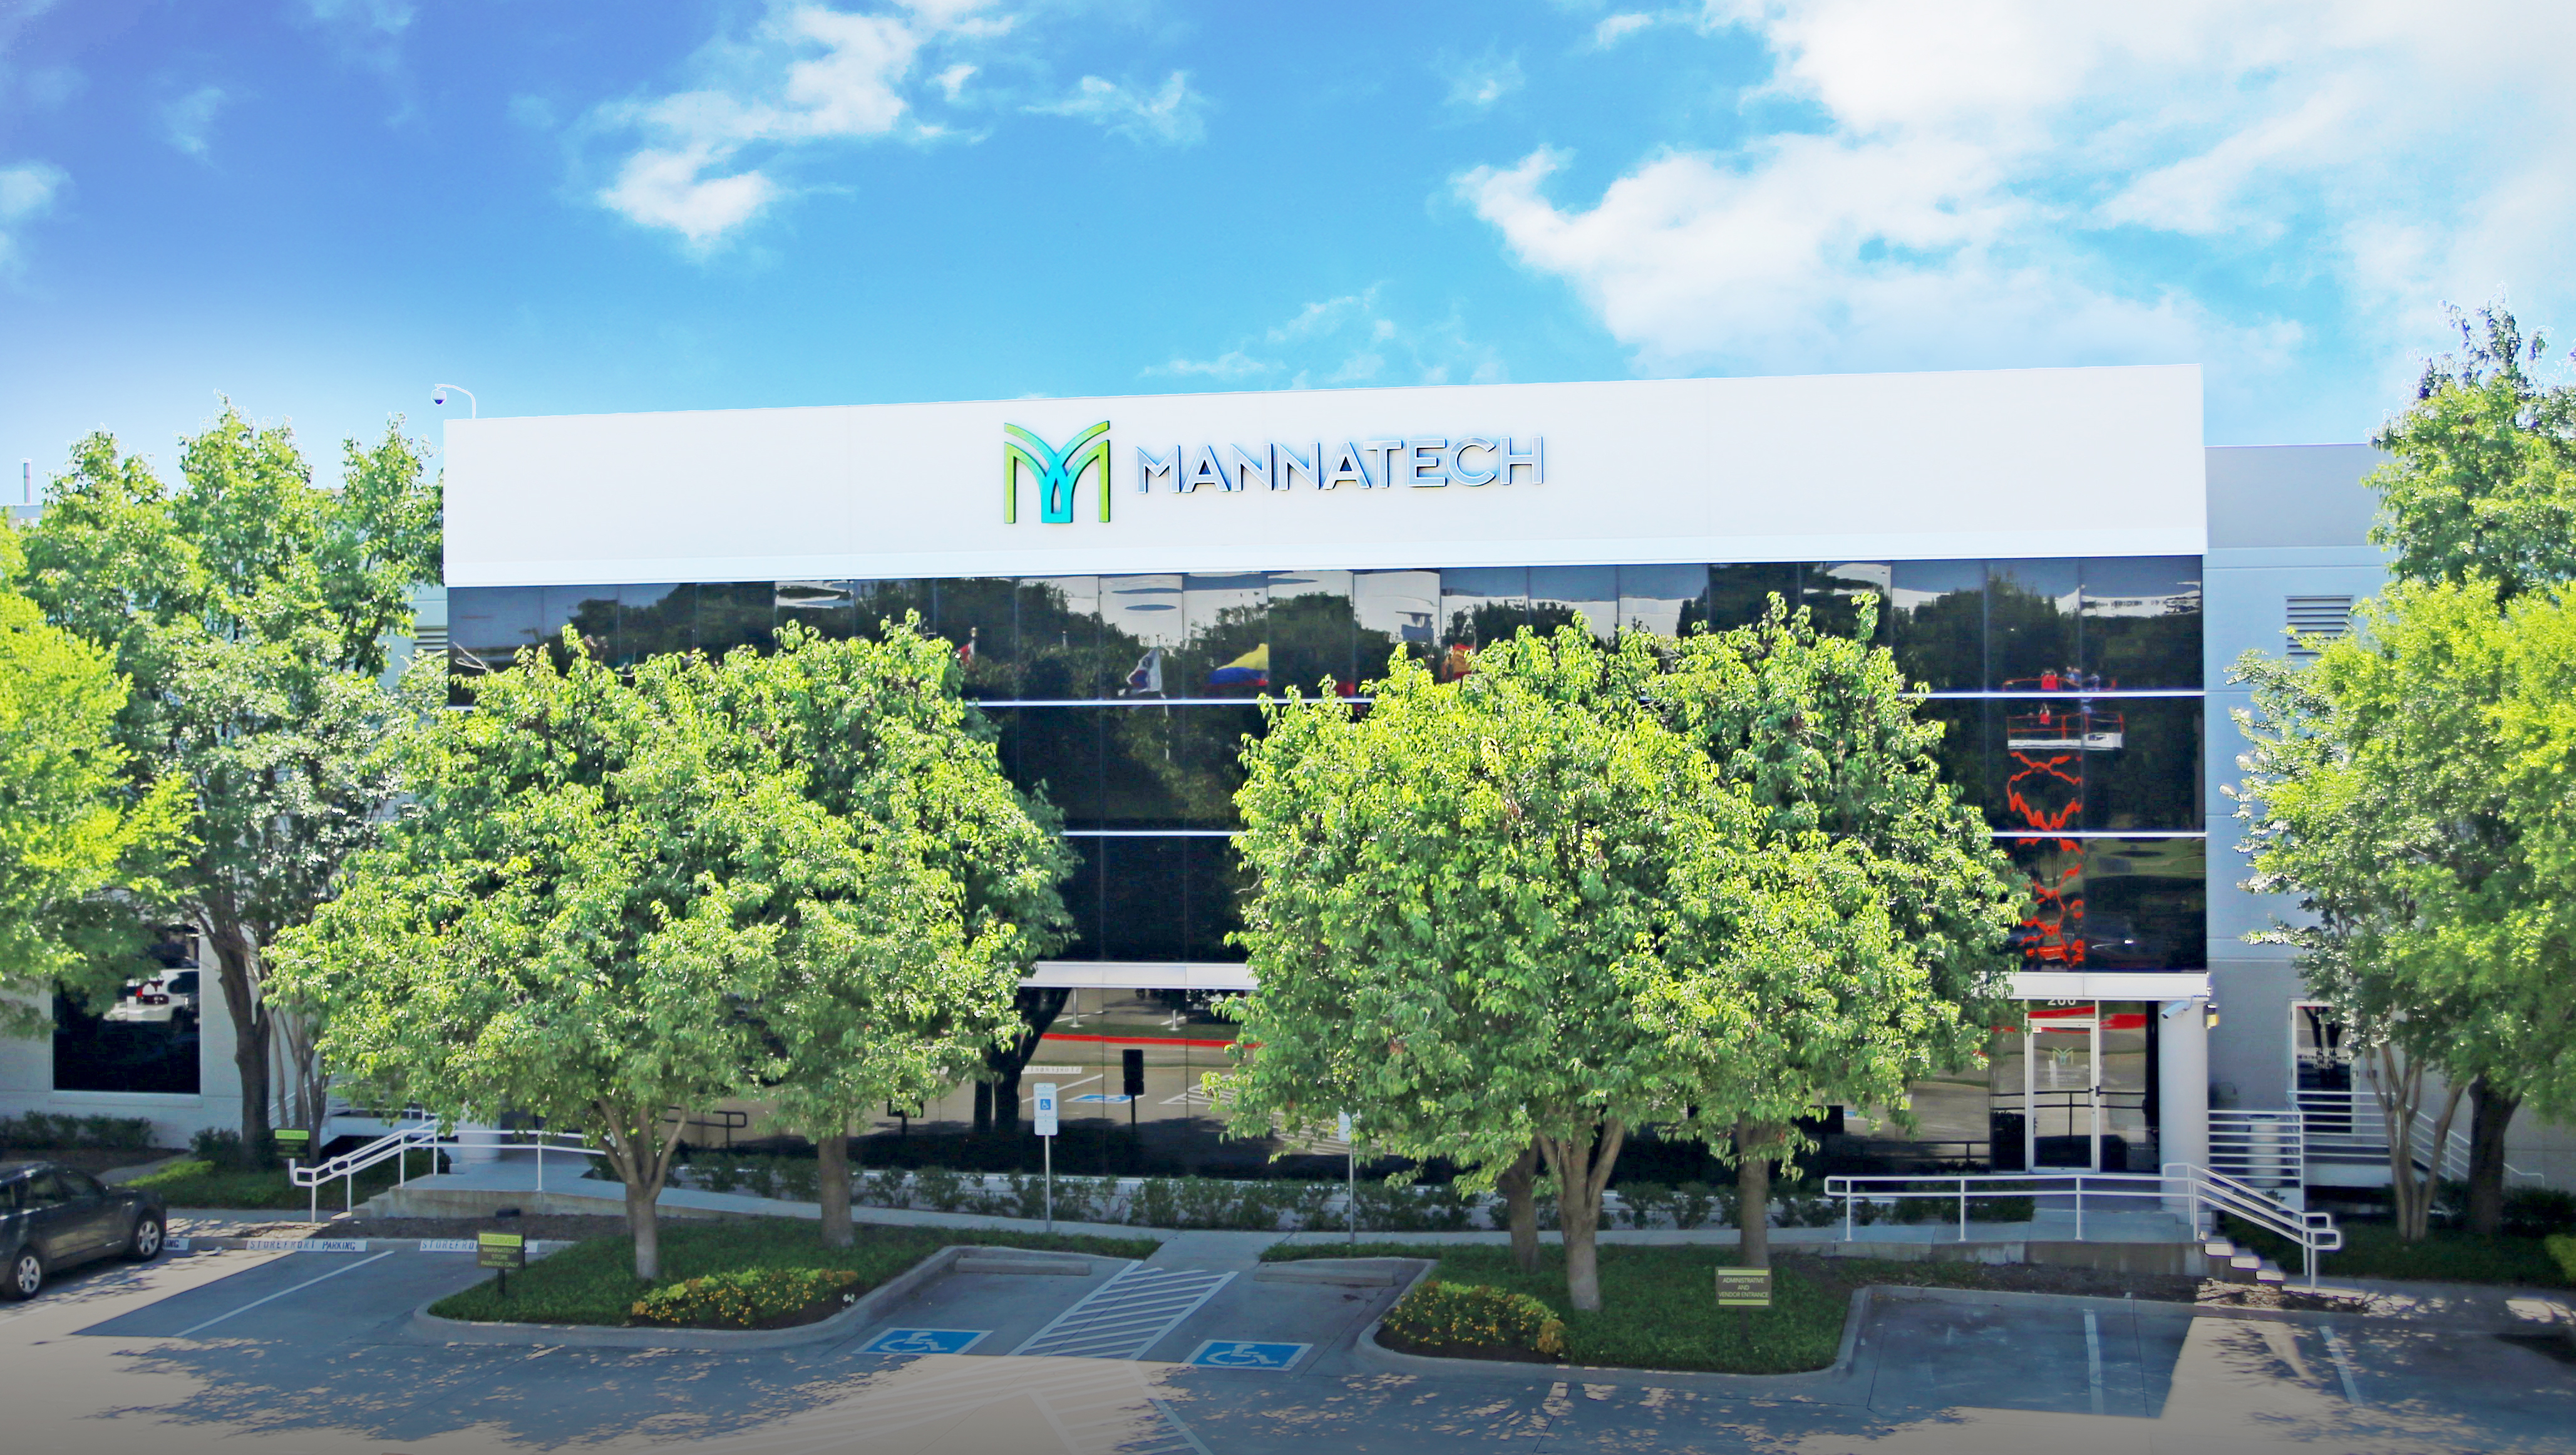 Mannatech Storefront  Health And Wellness Headquarters For North Texas